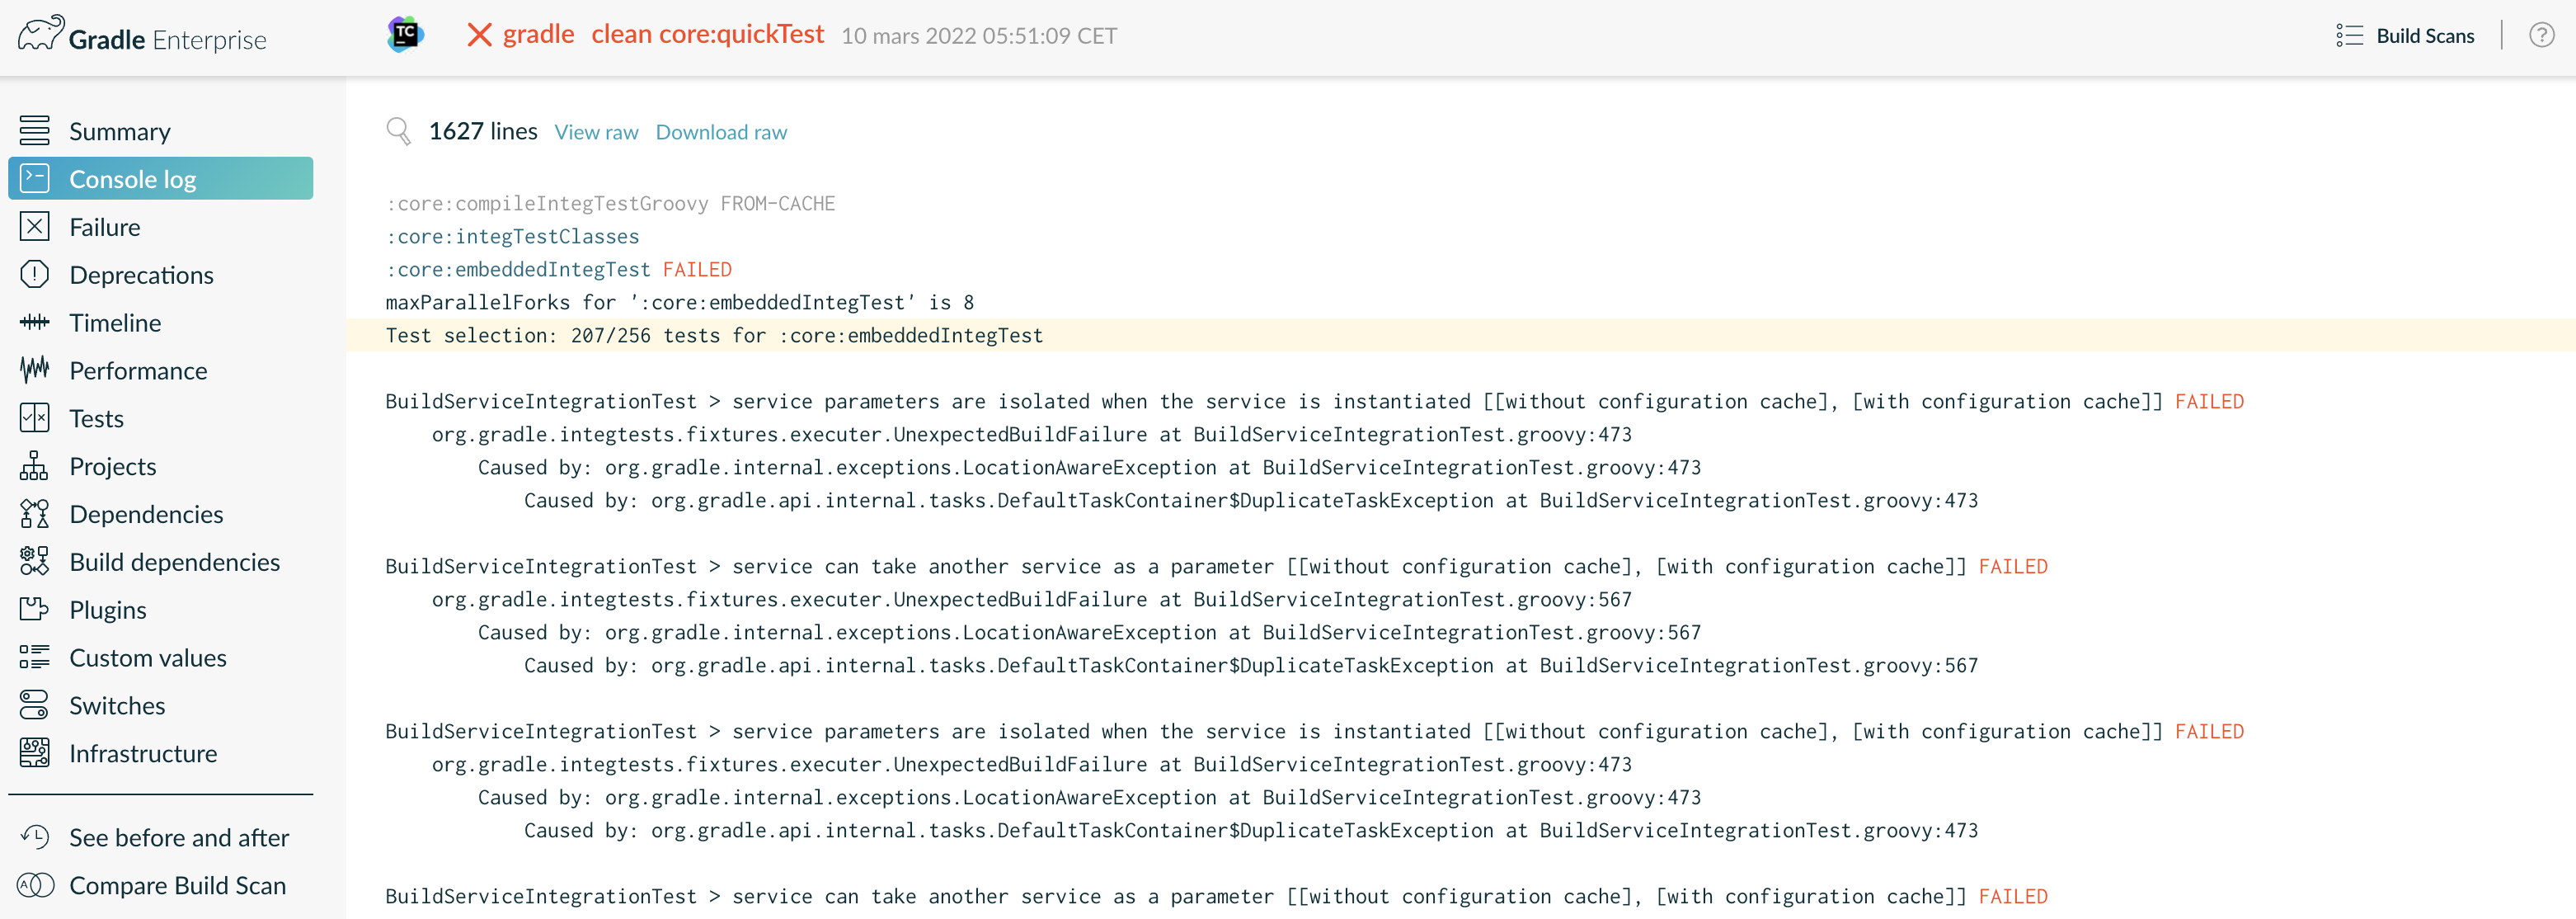 Getting Started with Gradle Enterprise for Gradle users